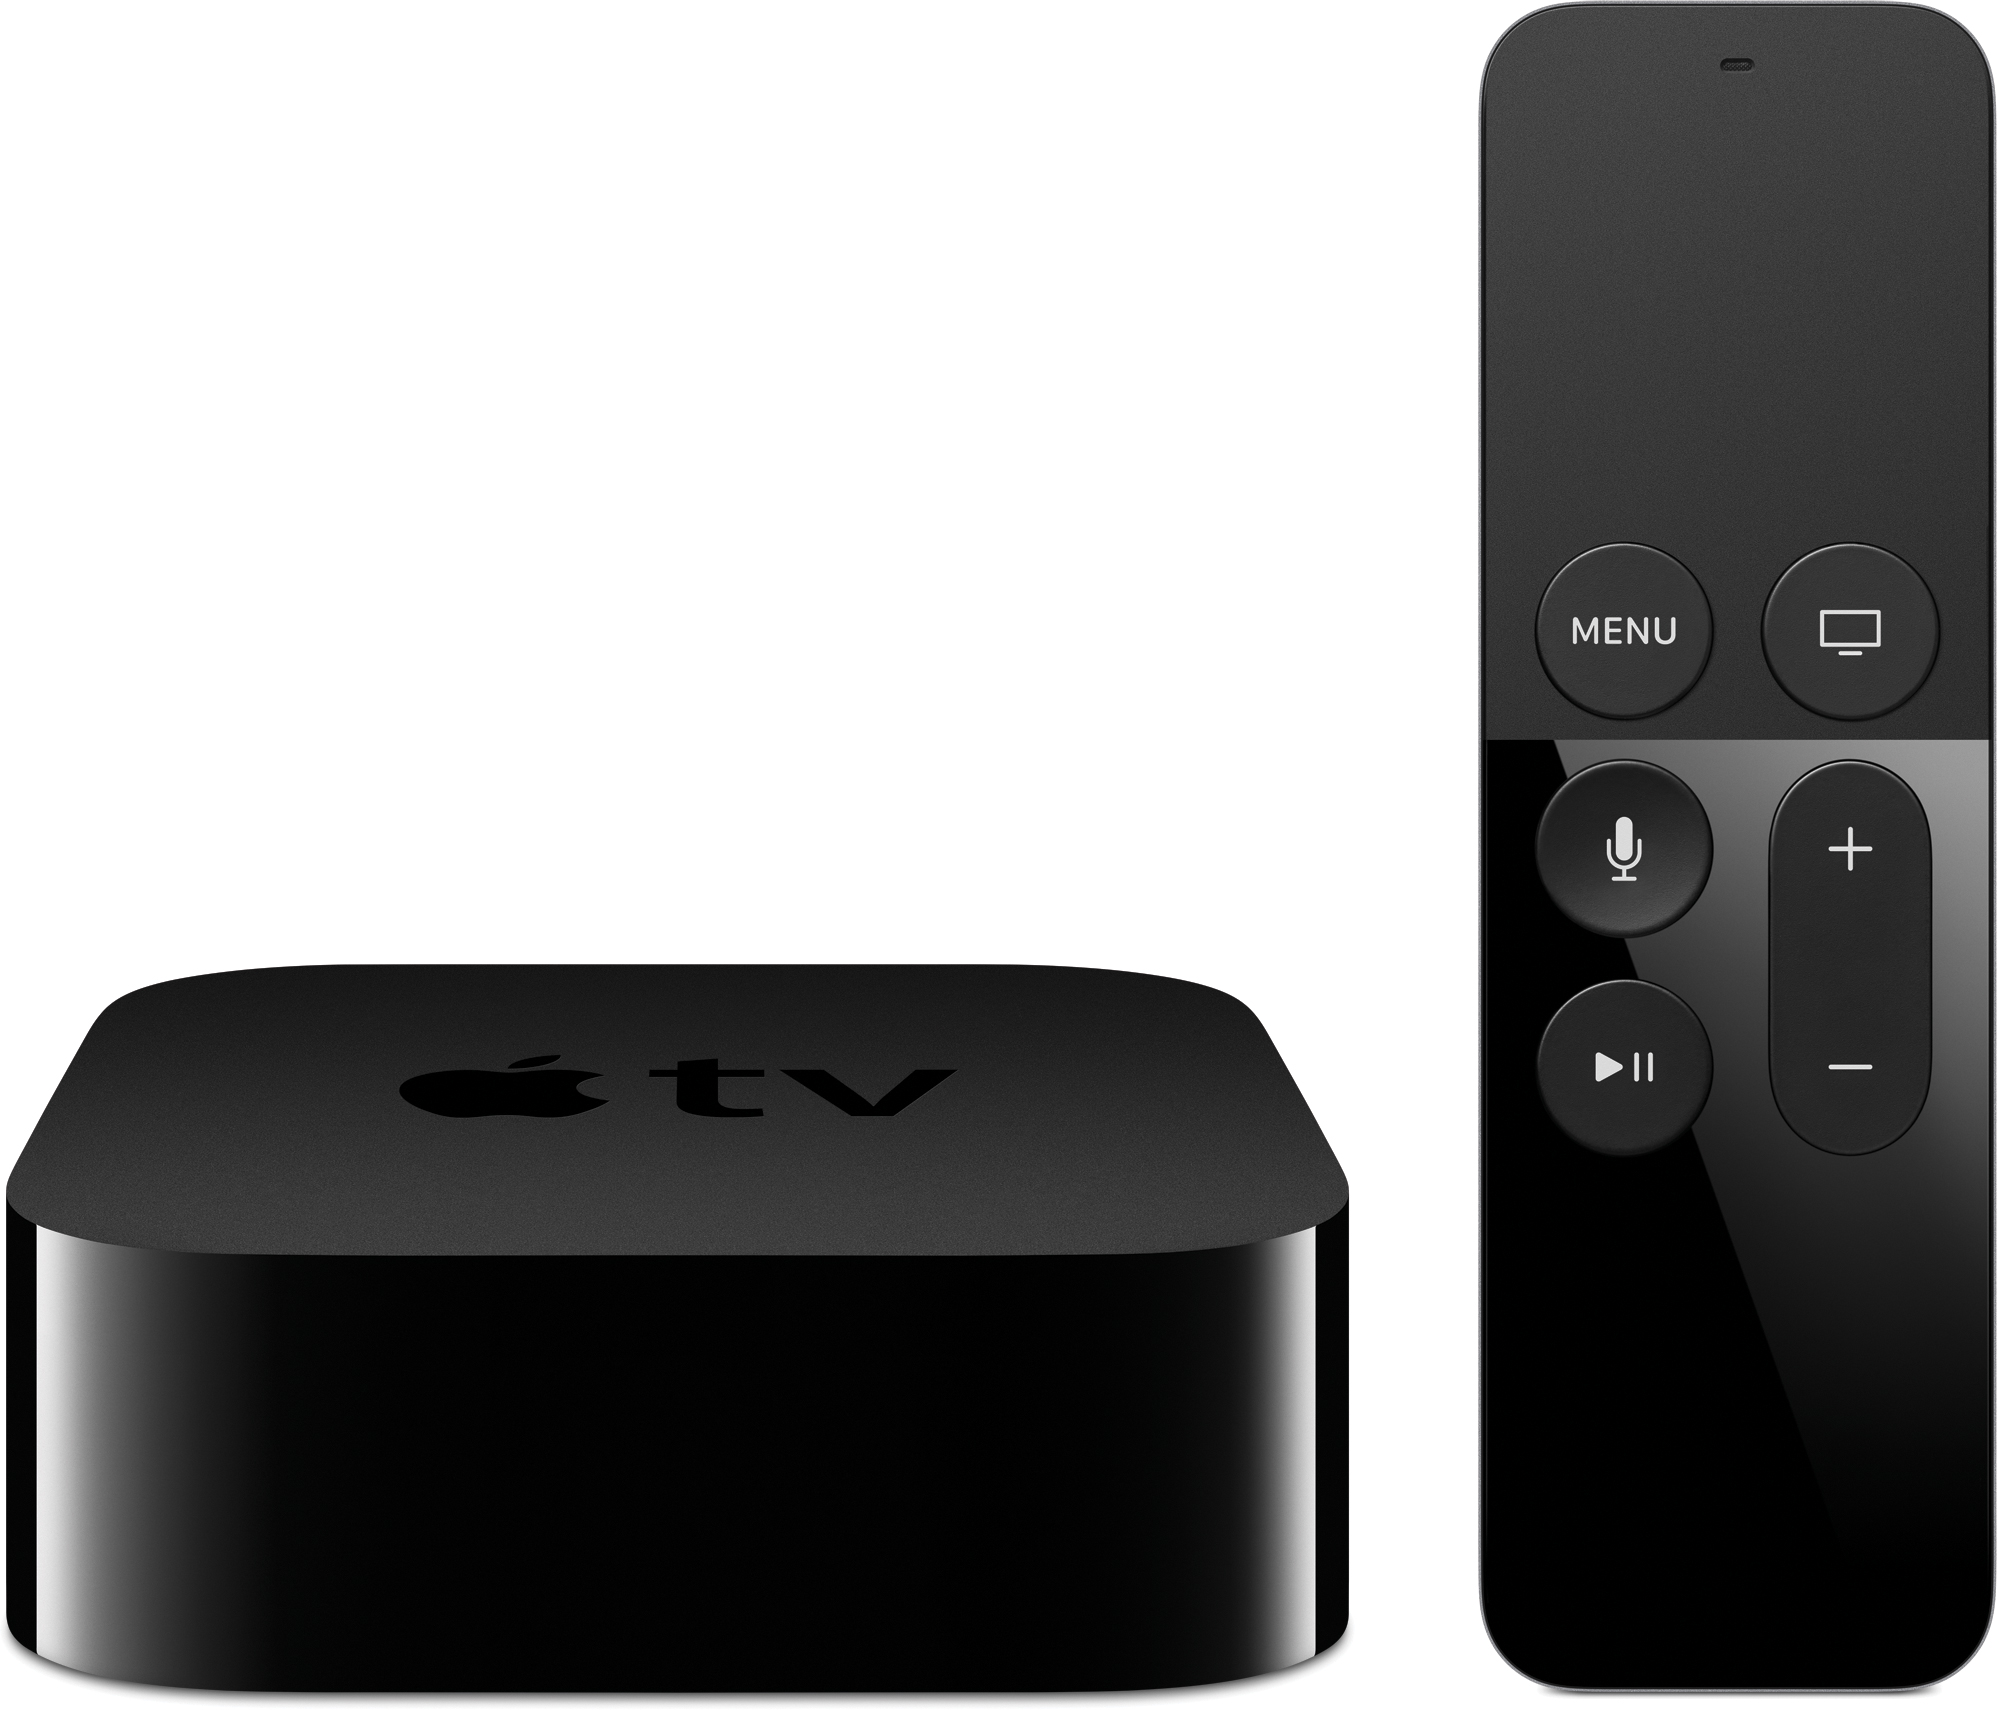 Nova Apple TV ao lado do controle remoto